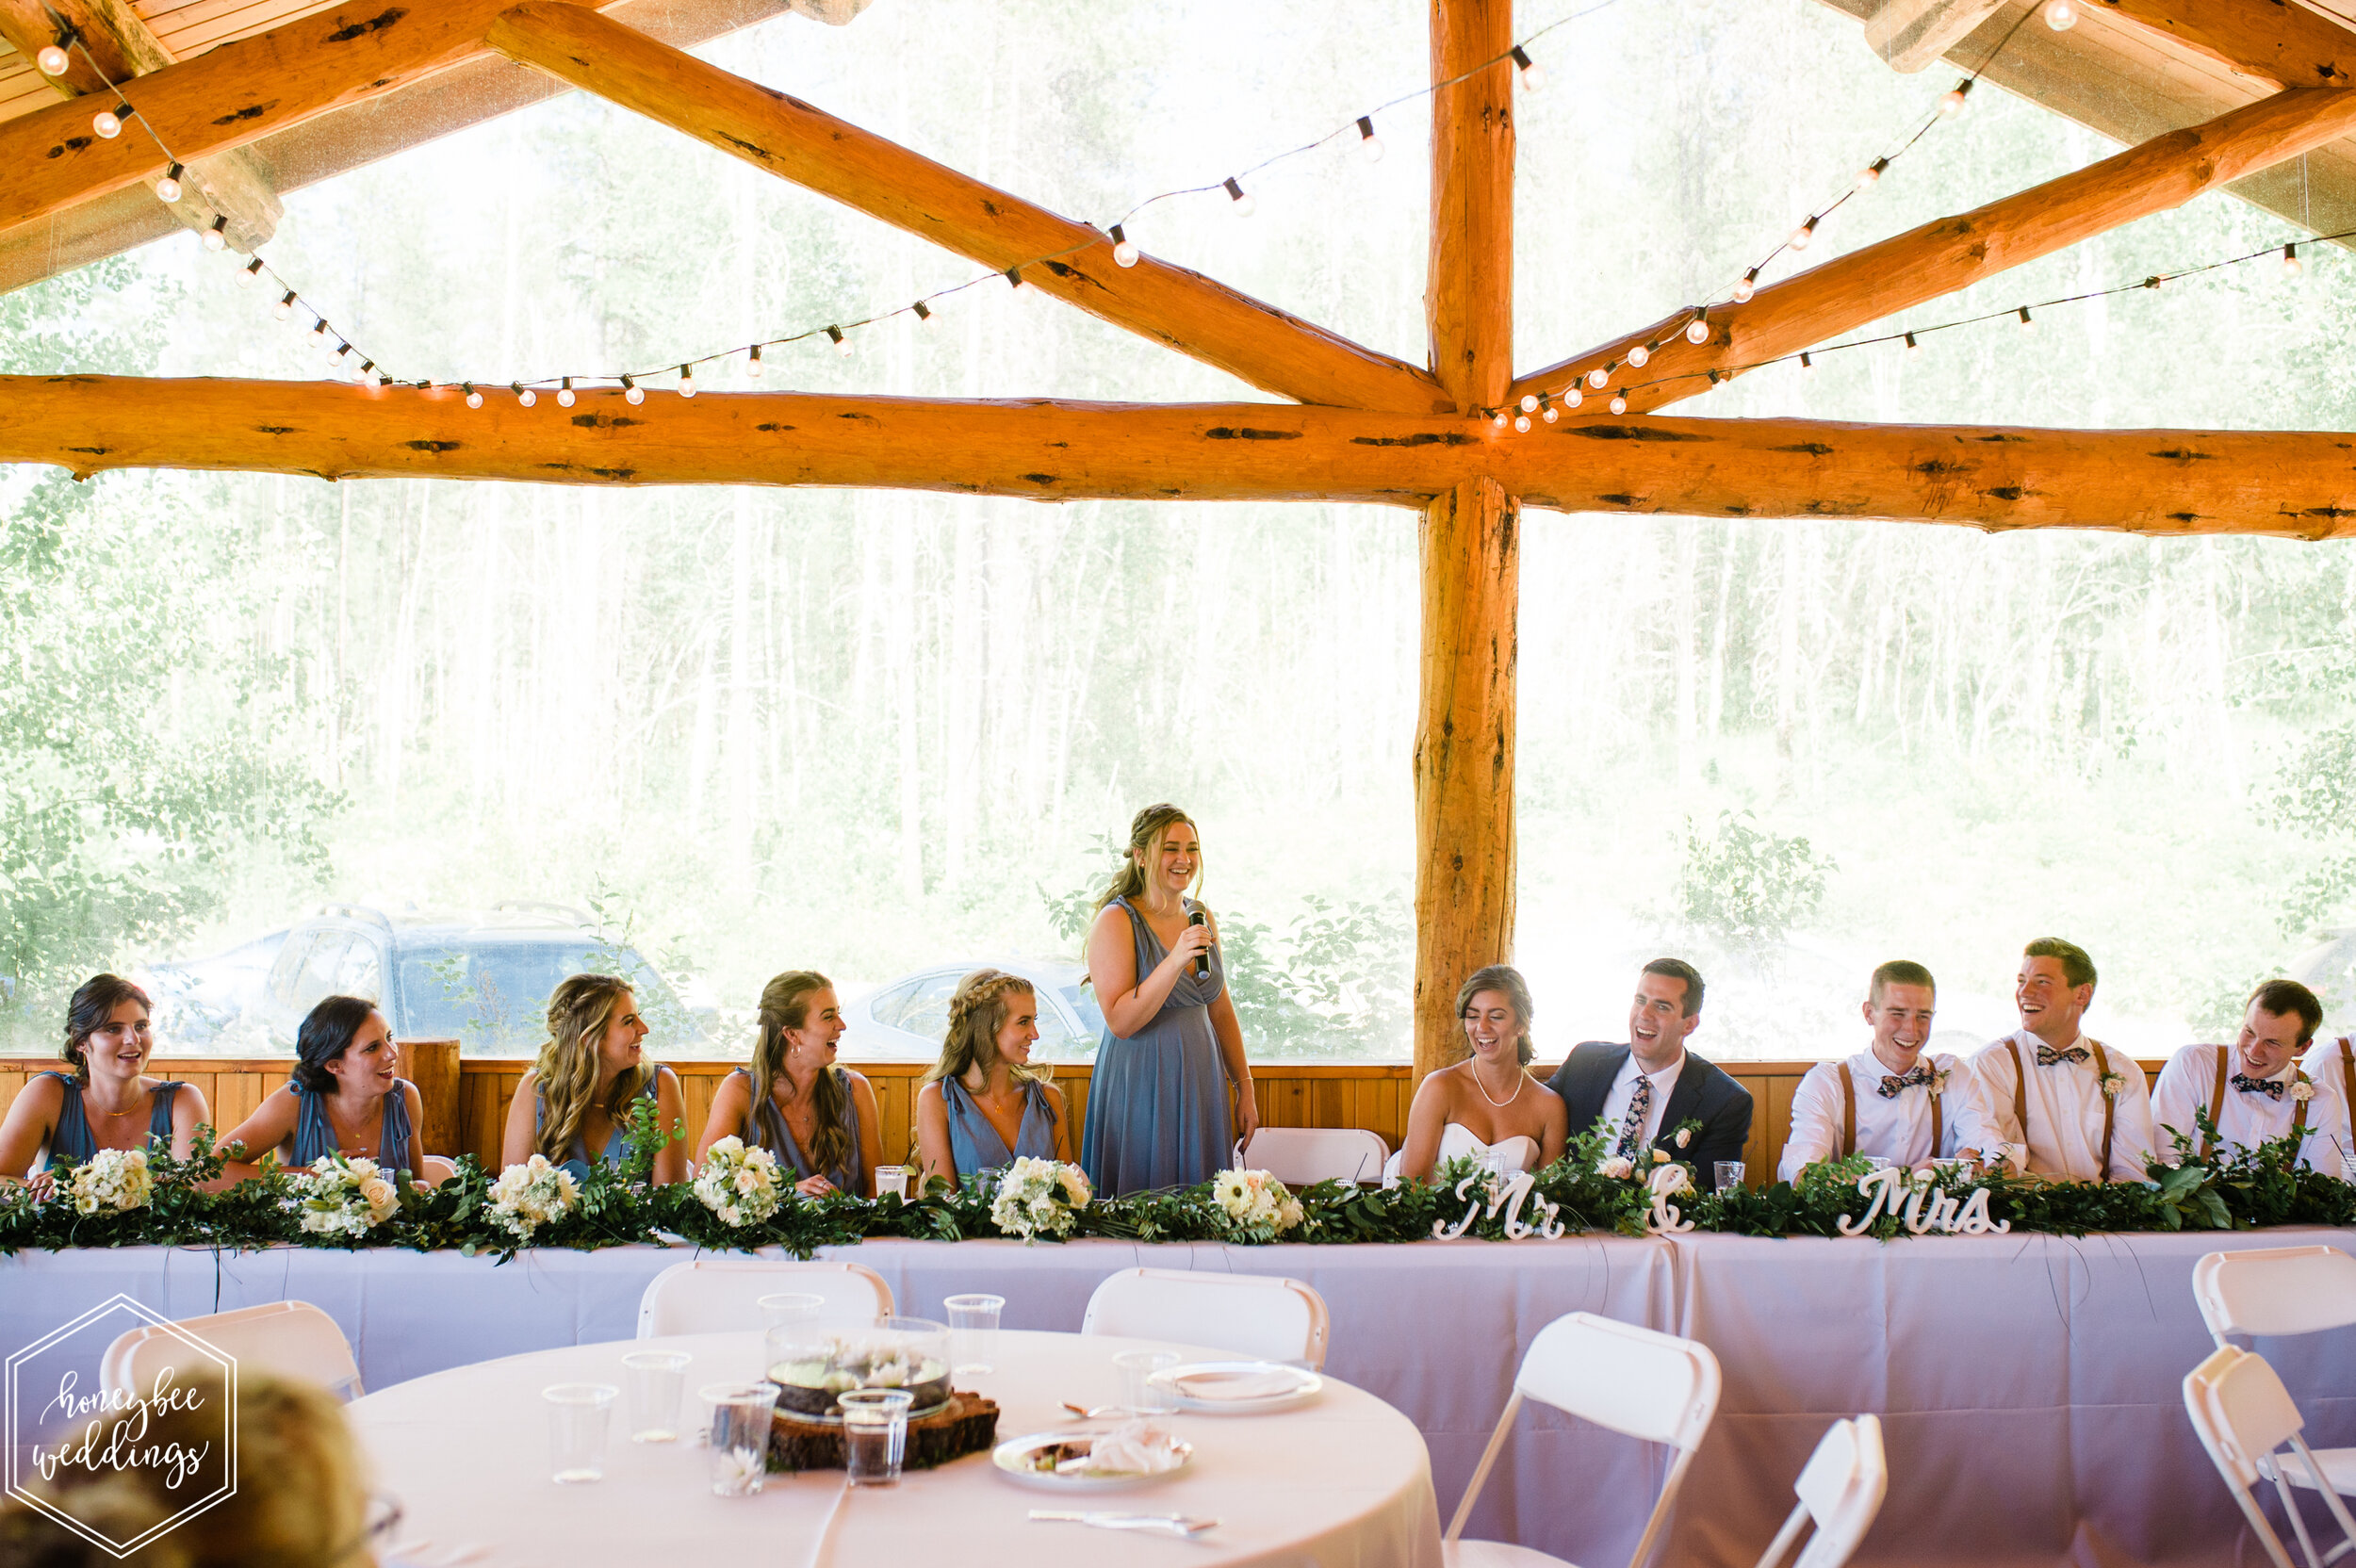 110Glacier National Park Wedding_Glacier Outdoor Center_Honeybee Weddings_Anna & Seth_July 21, 2019-2171.jpg